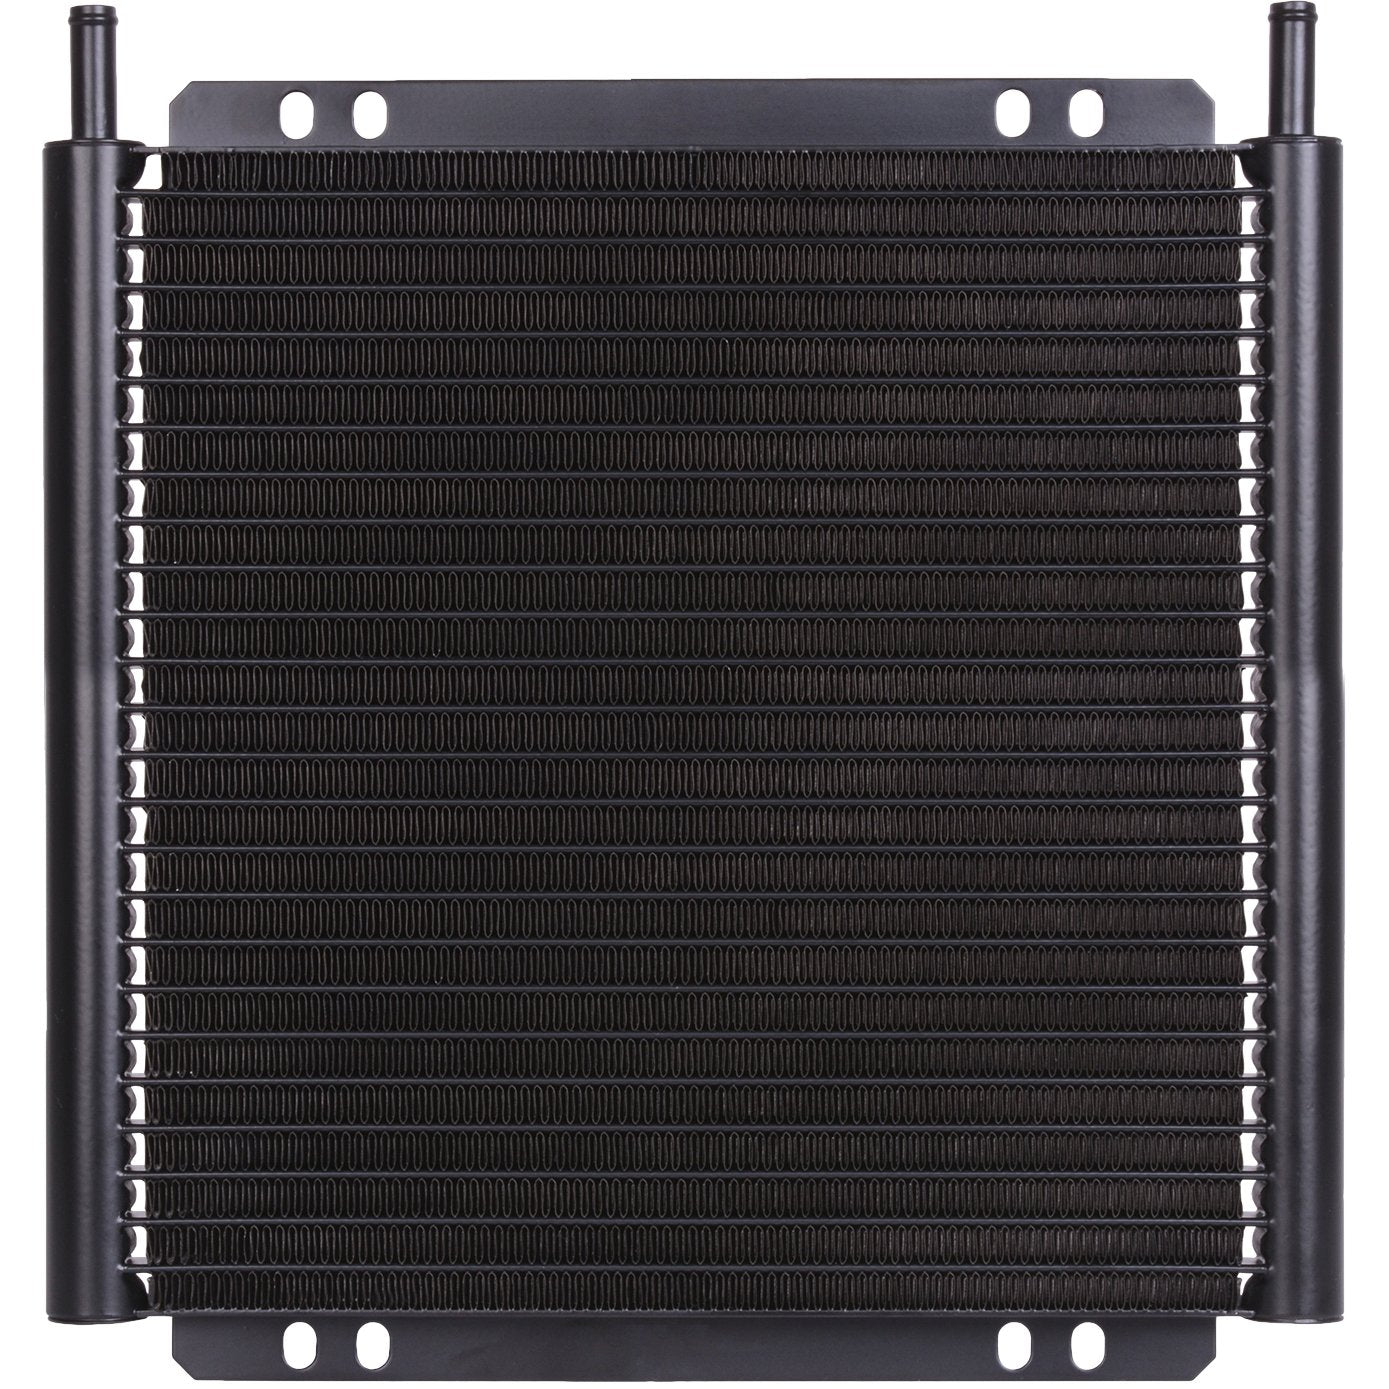 "30 Row Engine Transmission Oil Cooler 8 Inch Electric Fan Thermostat Temperature Switch In-Line Wire Kit-Oil Cooler-American Volt-6AN-1/8"" NPT-140'F On - 125'F Off-American Volt"